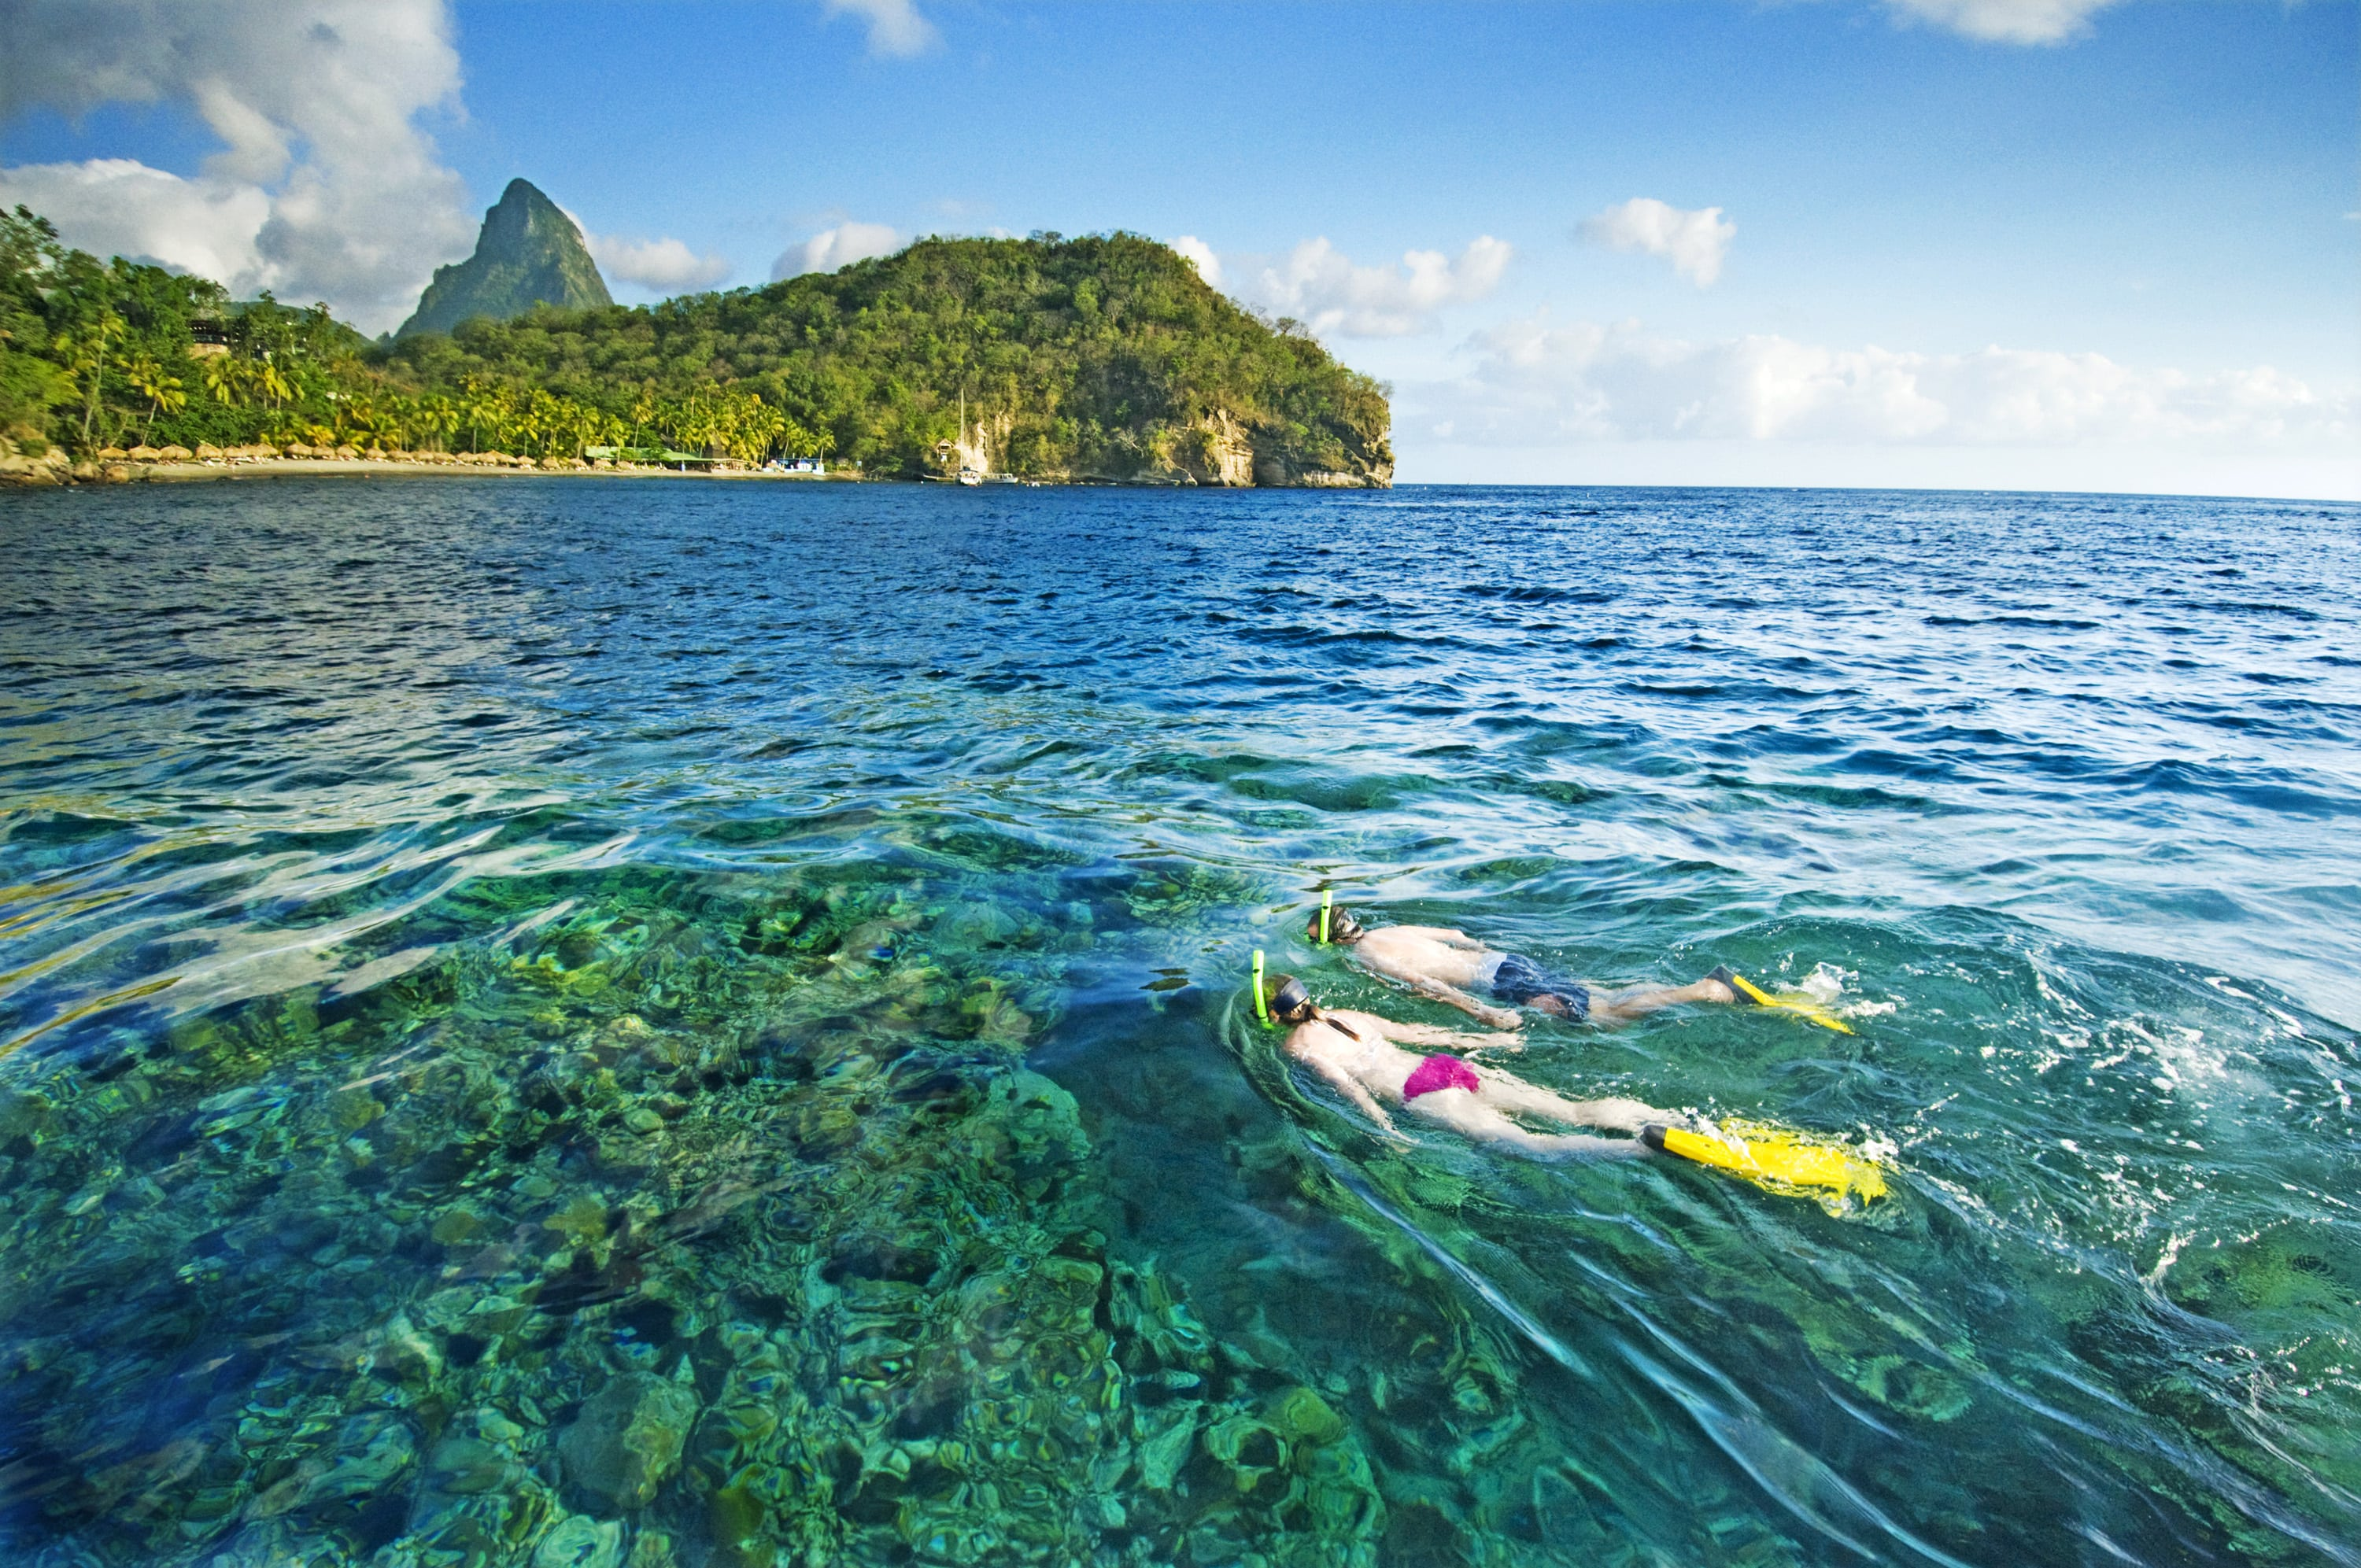 St. Lucia's best snorkeling reefs begin mere yards from the shore and are home to a profusion of unique tropical marine life.